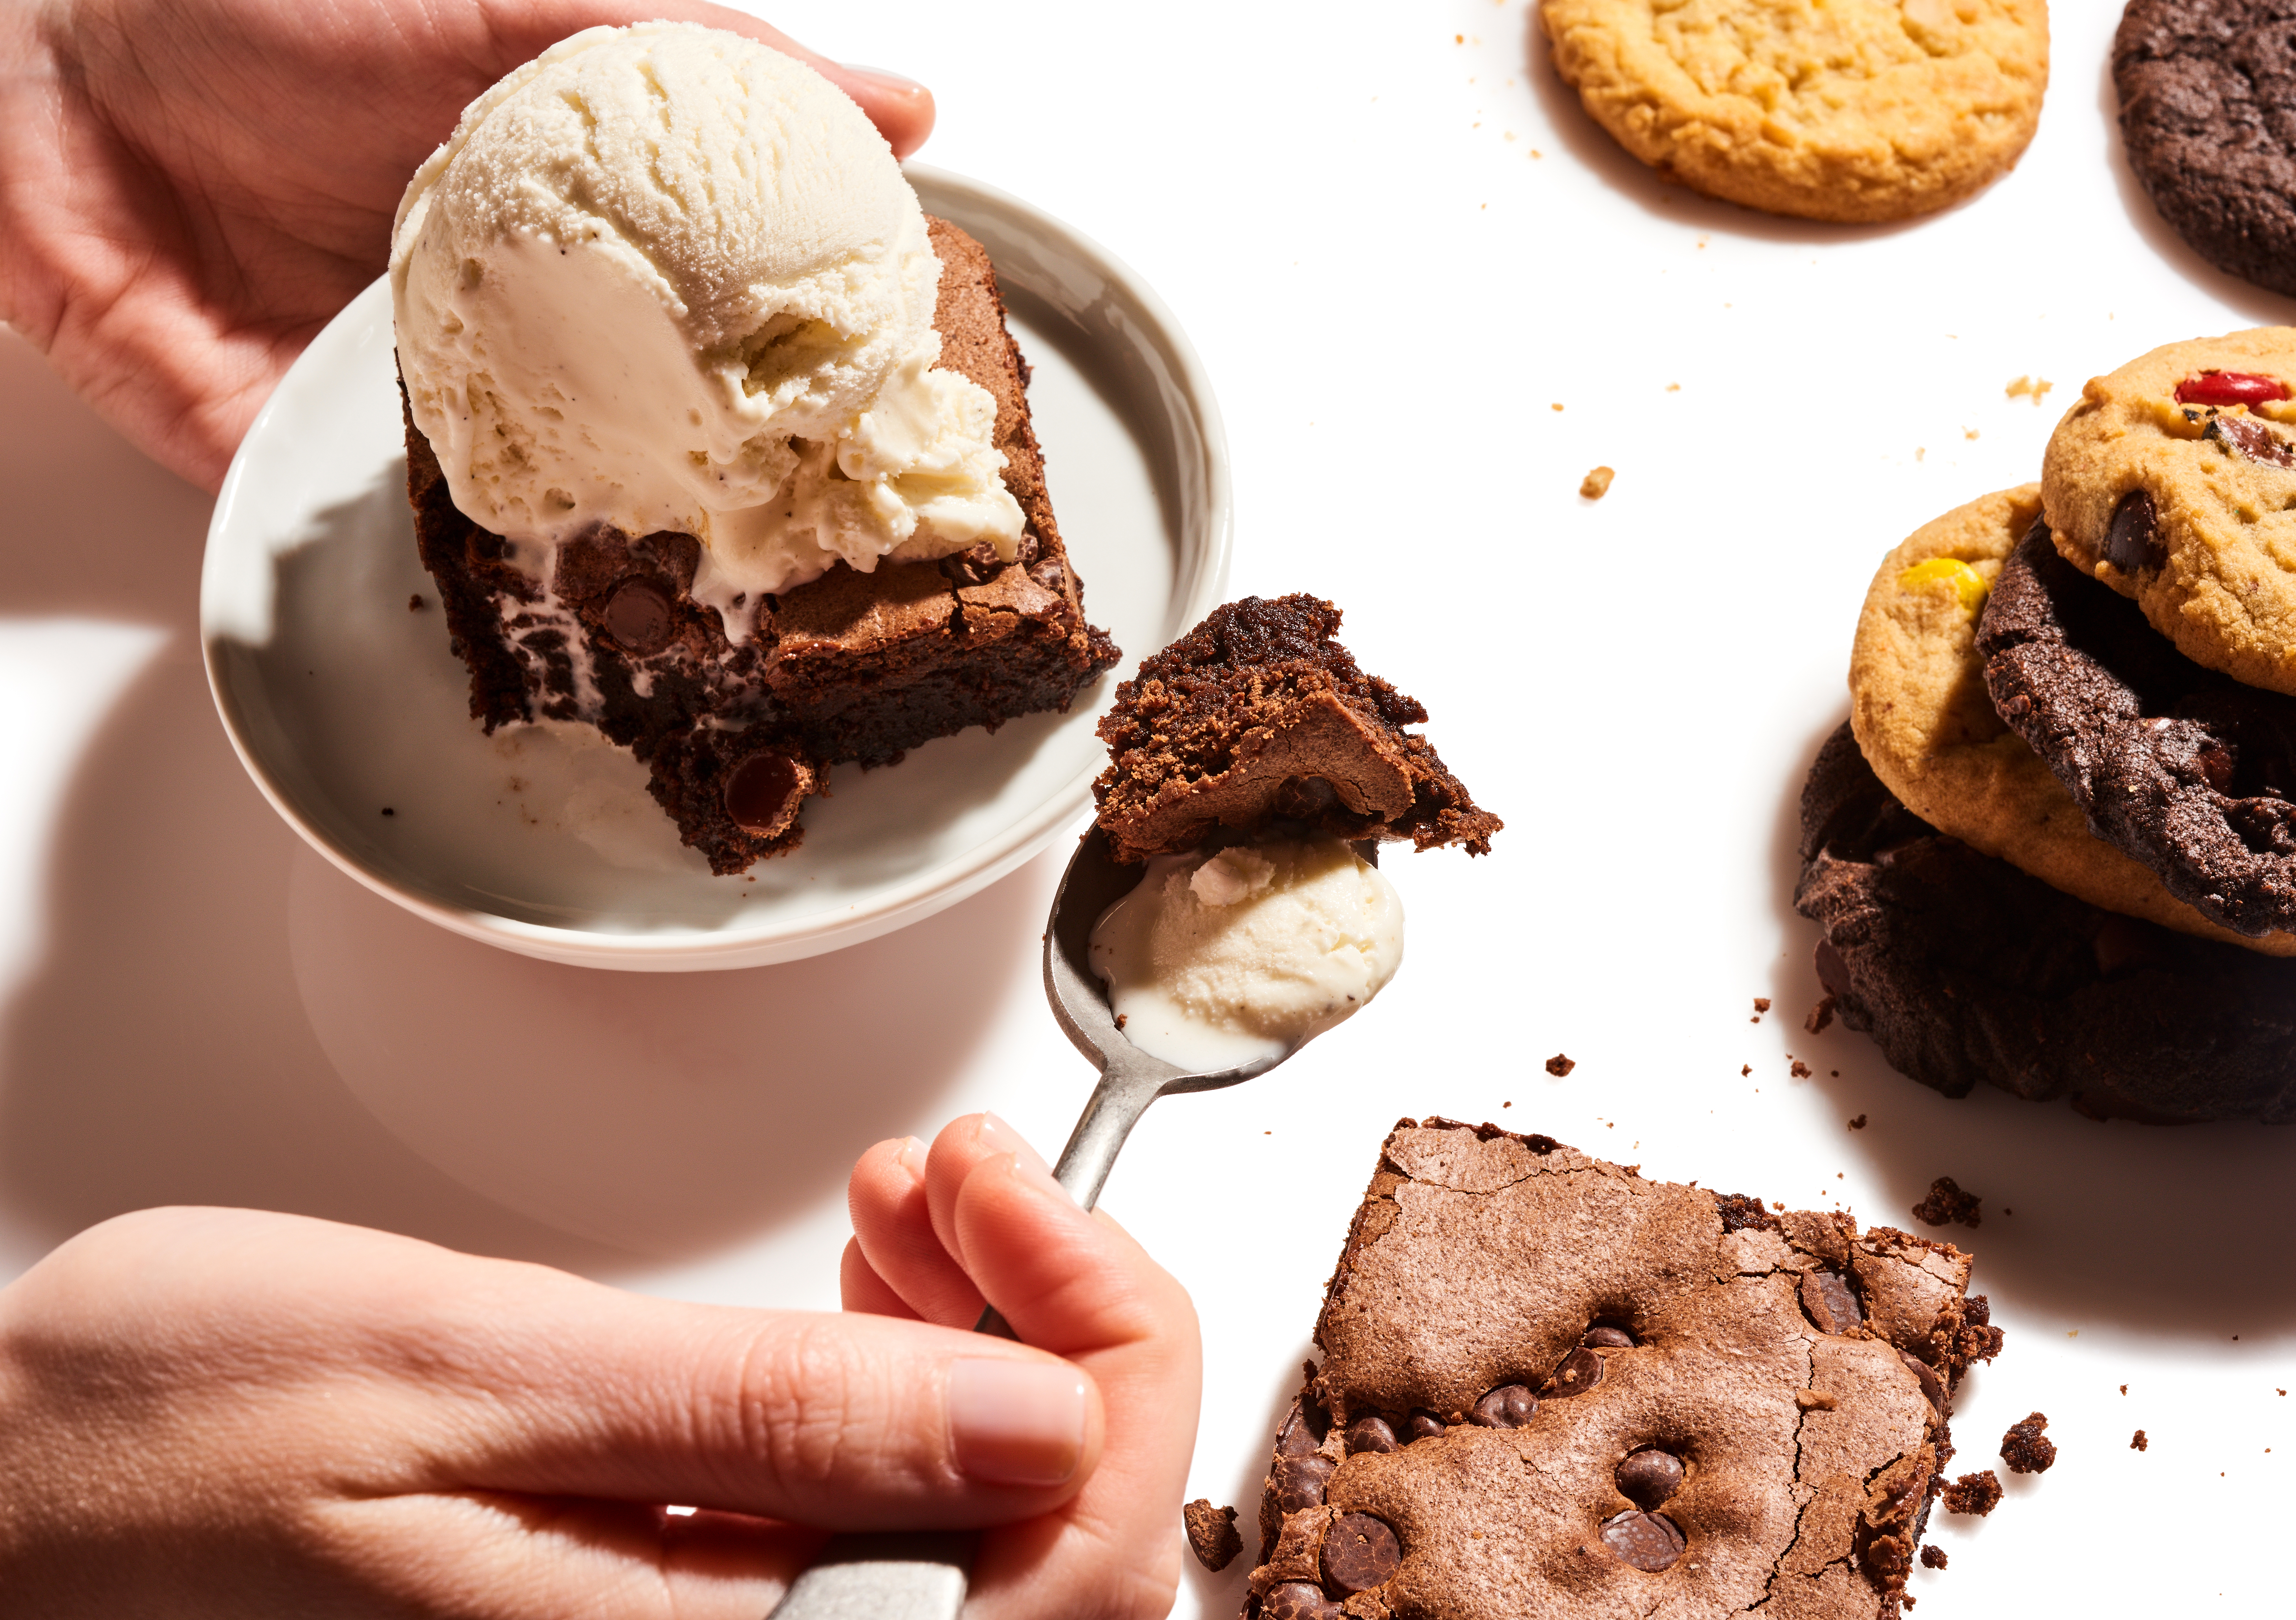 Hand holding a spoonful of brownie and vanilla ice cream next to a carton of vanilla ice cream containing a chocolate brownie topped with a scoop of vanilla ice cream. Chocolate chip cookies and brownie are scattered beside the carton from Insomnia Cookies